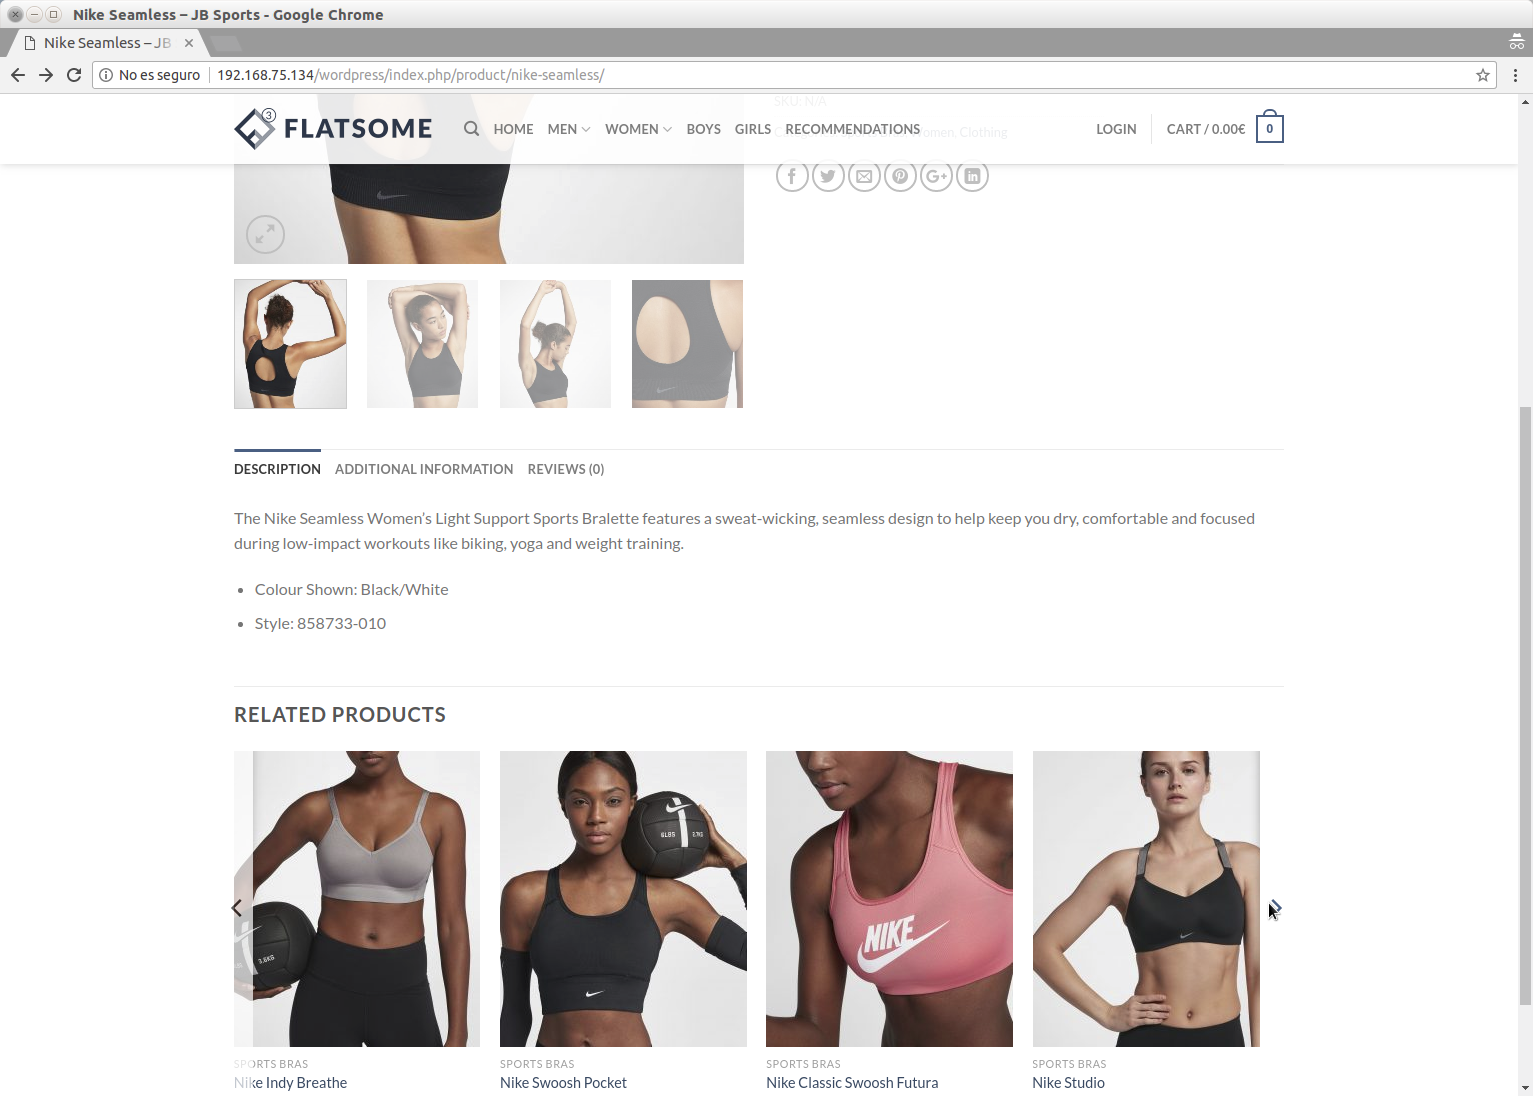 Here's how Recomendo integrates into WooCommerce related products area.